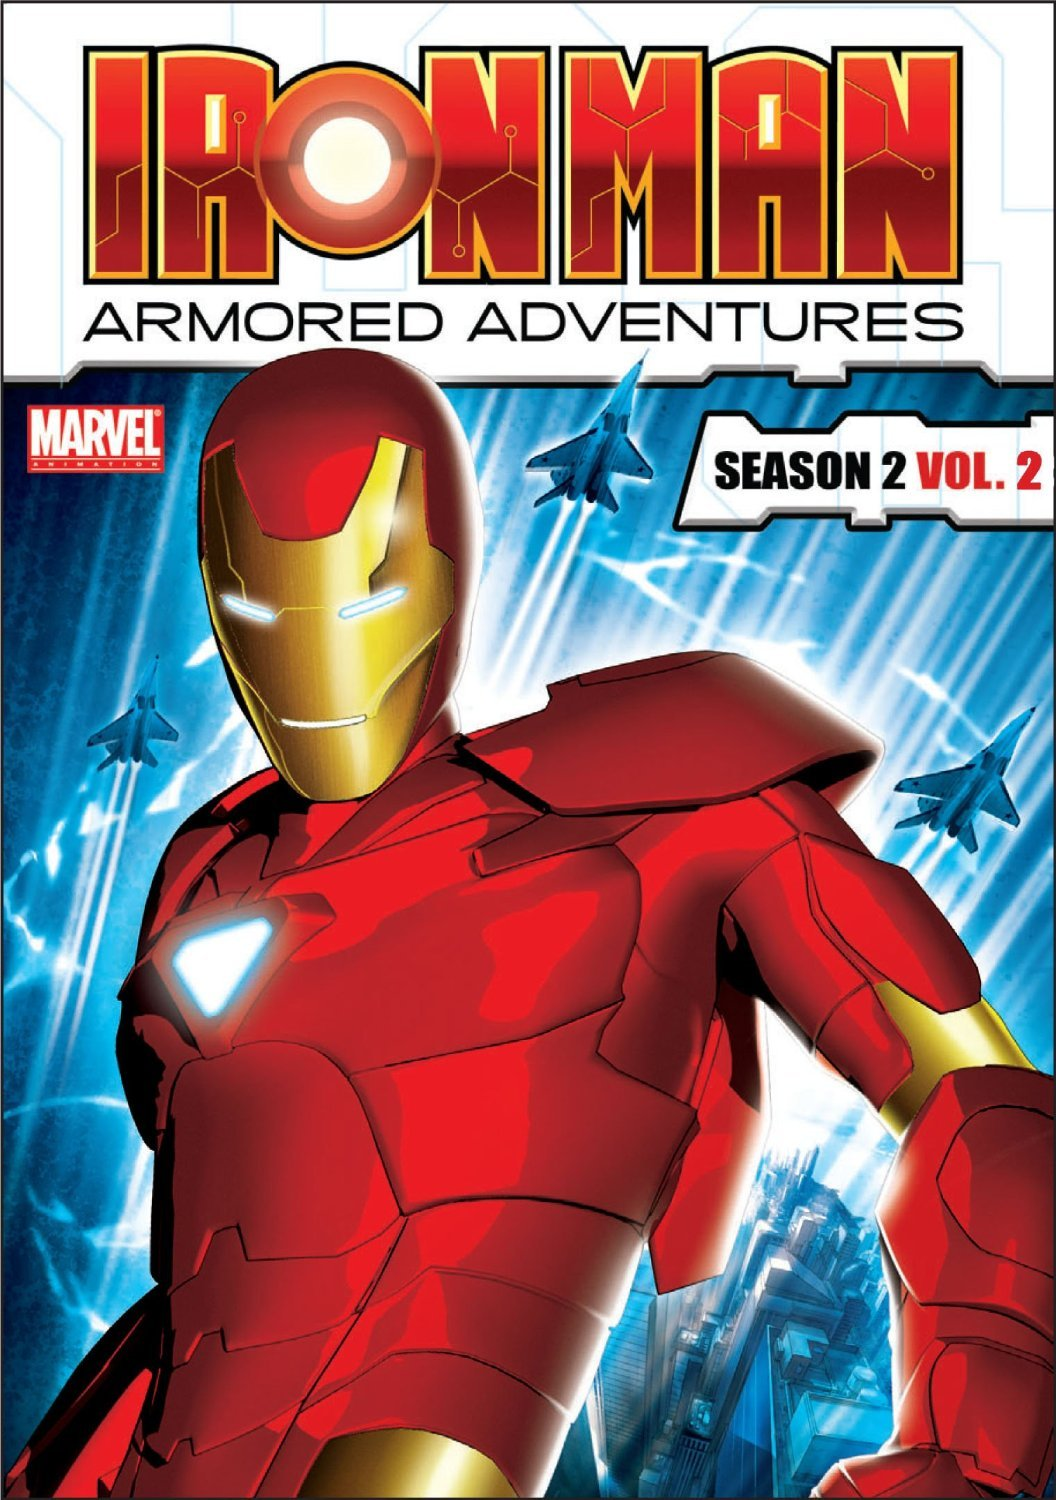 Iron Man: Armored Adventures - Season 2, Vol. 2 (DVD, 2012)